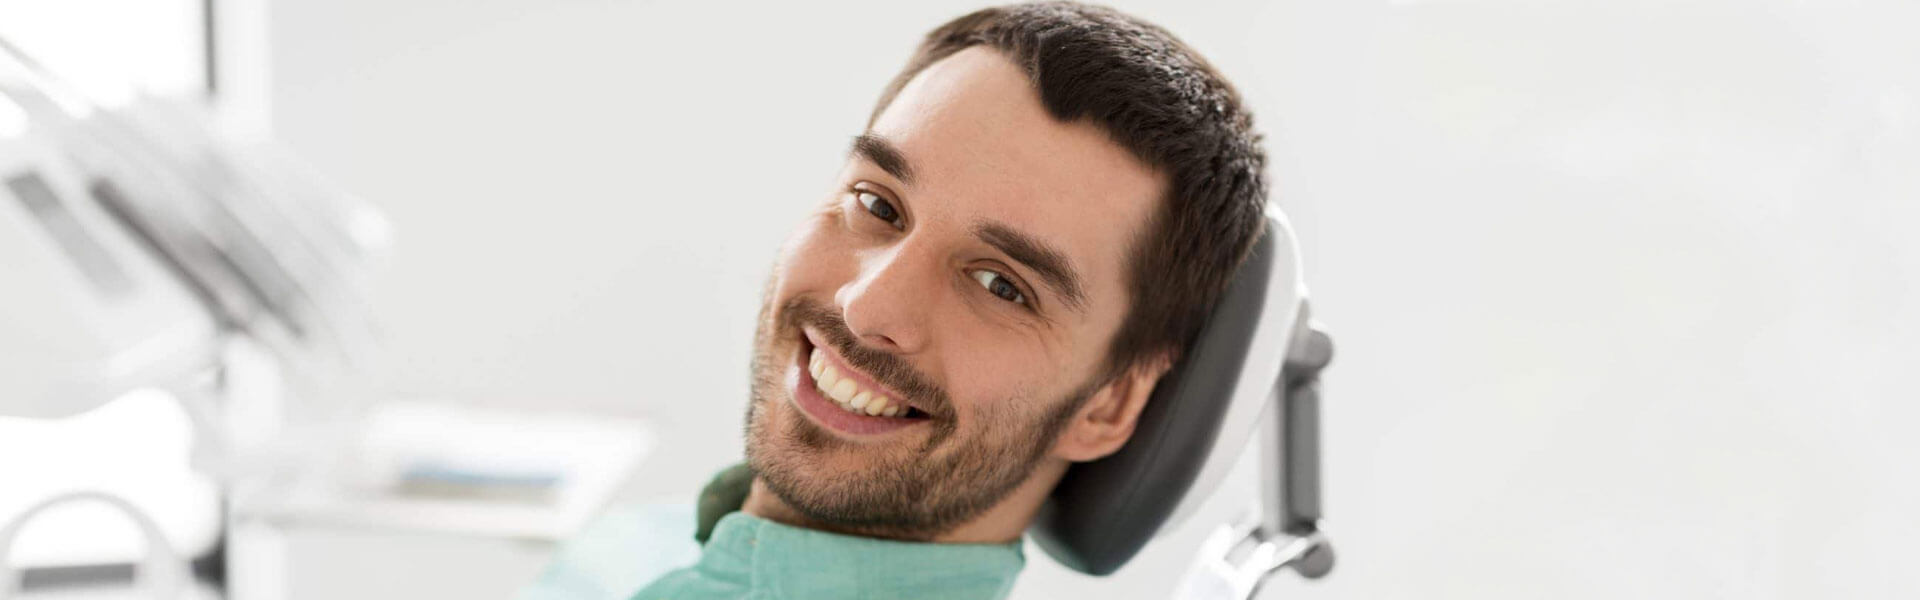 Gaps in your smile Can Quickly Be Bridged by a Dental Bridge